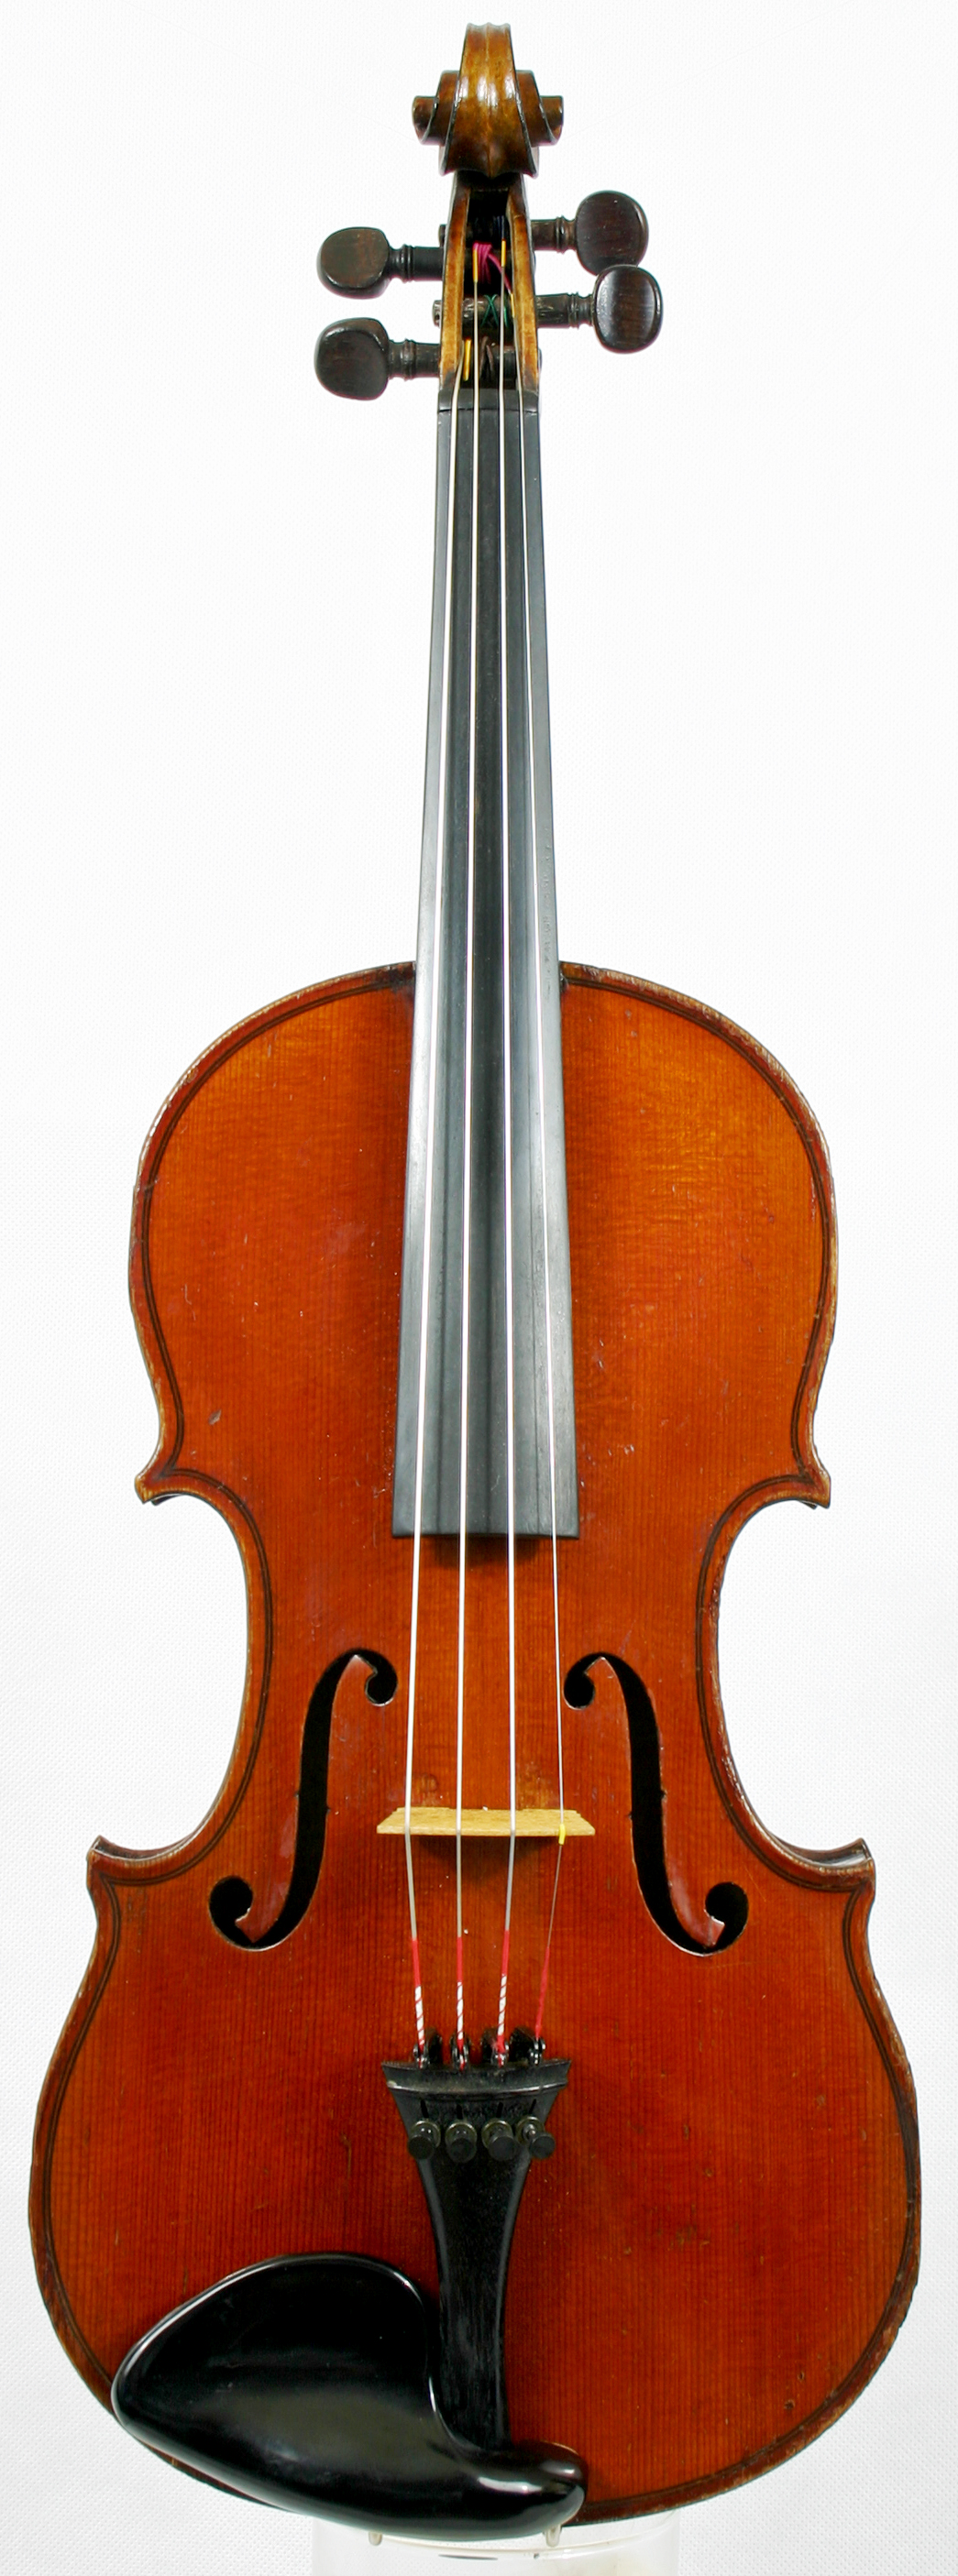 Uk violins quality antique instruments and bows small Vibeline